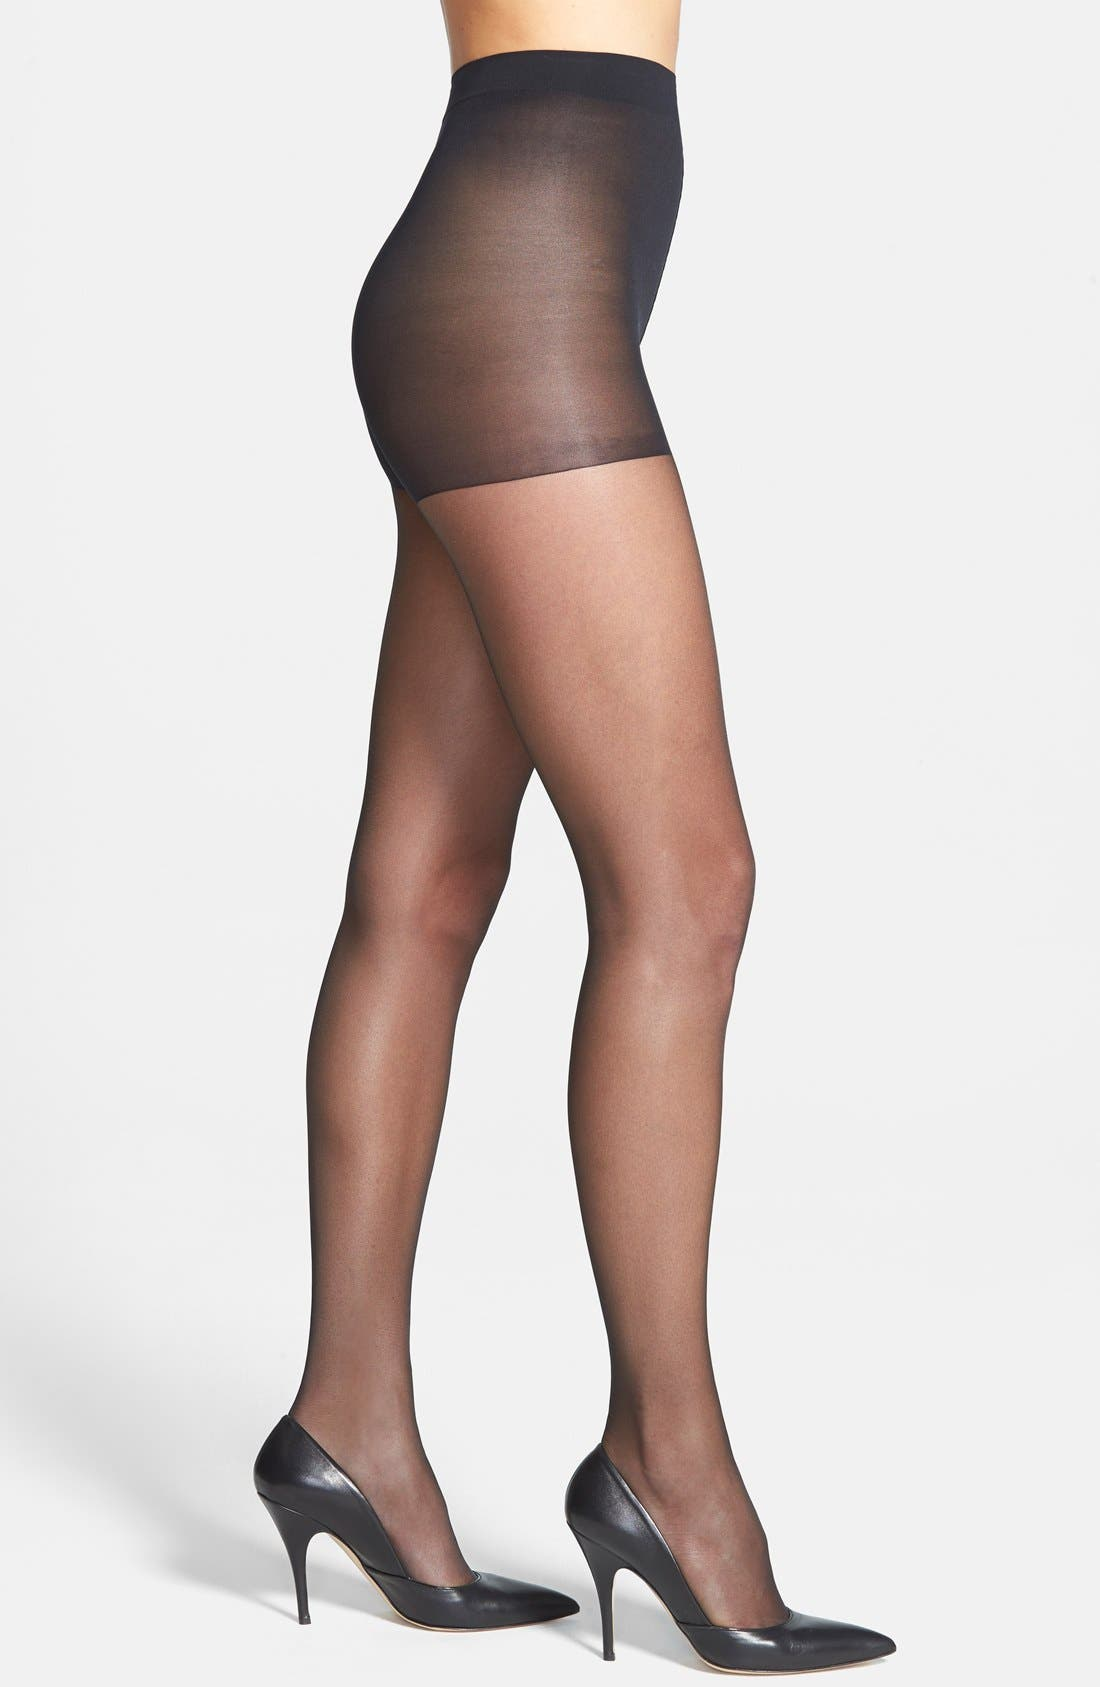 'Sheer Essentials - Matte Ultra Sheer' Control Top Pantyhose,                             Main thumbnail 1, color,                             BLACK